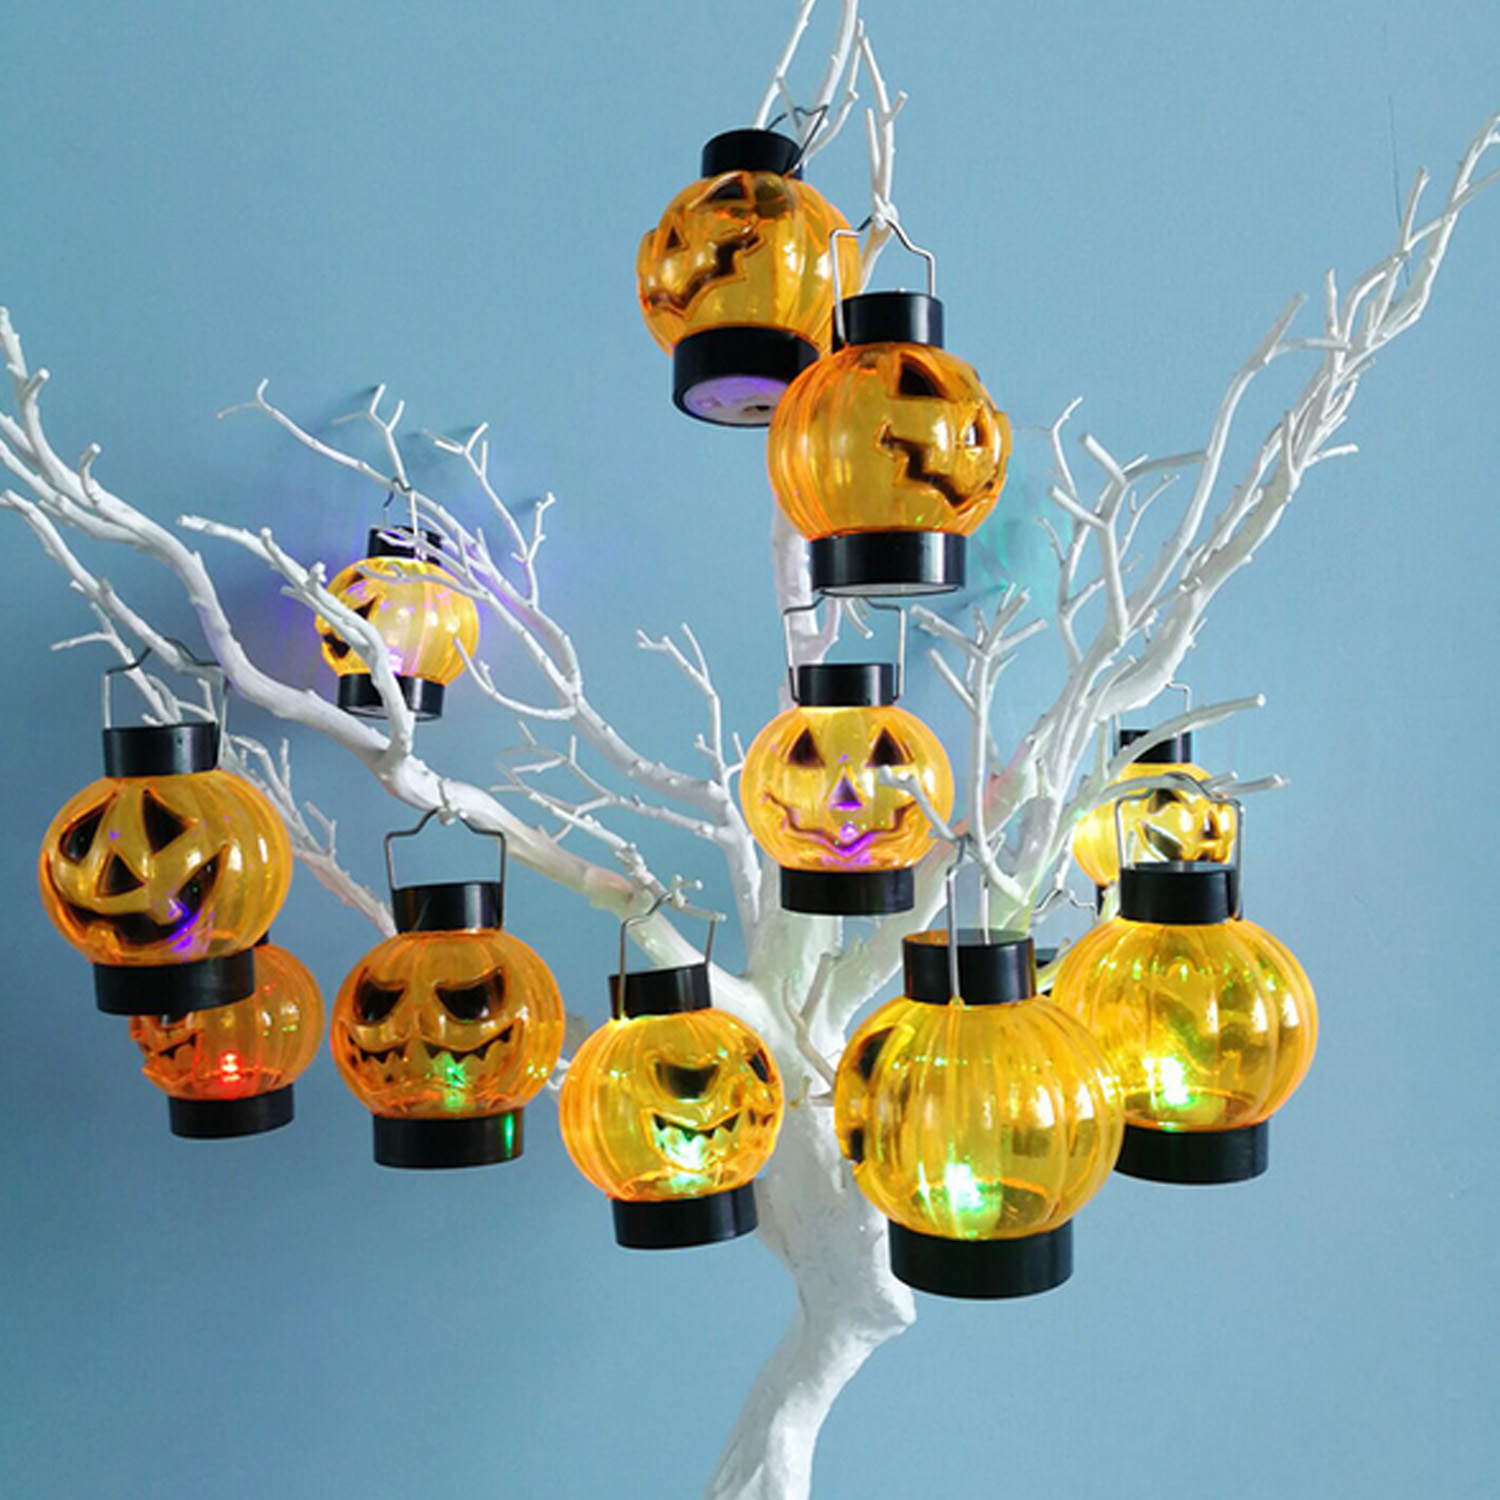 Horror Scary LED Glowing Pumpkin Spider Web Lamp White Black Skeleton Bone Shape Battery Operated Lights for Halloween Props